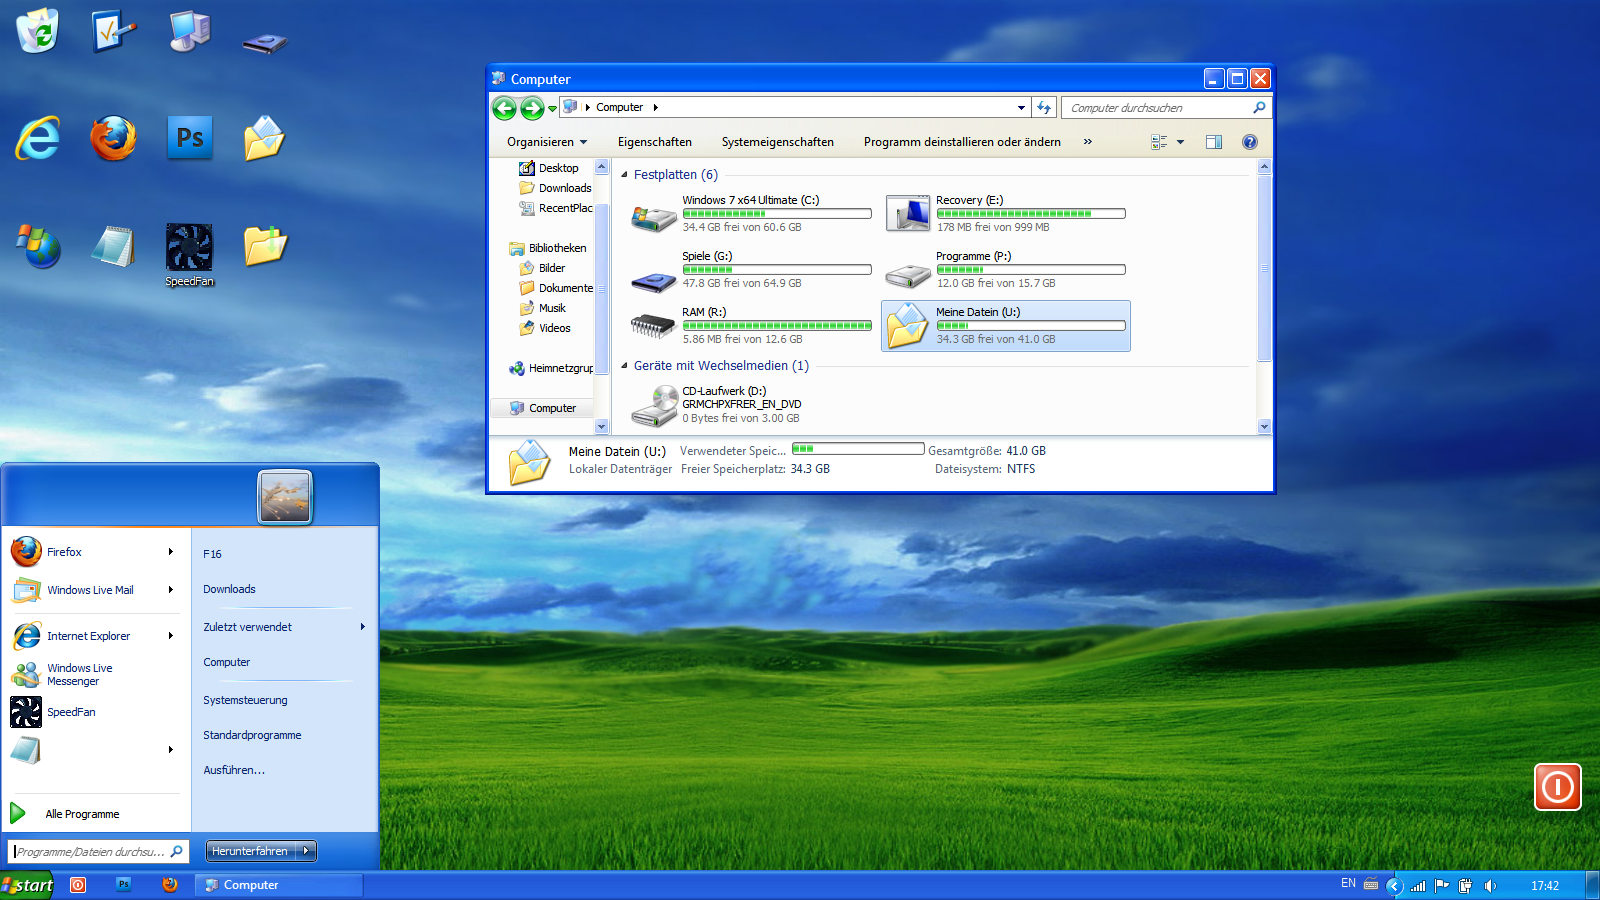 windows_xp_theme_package_by_gothago229-d46391x.png